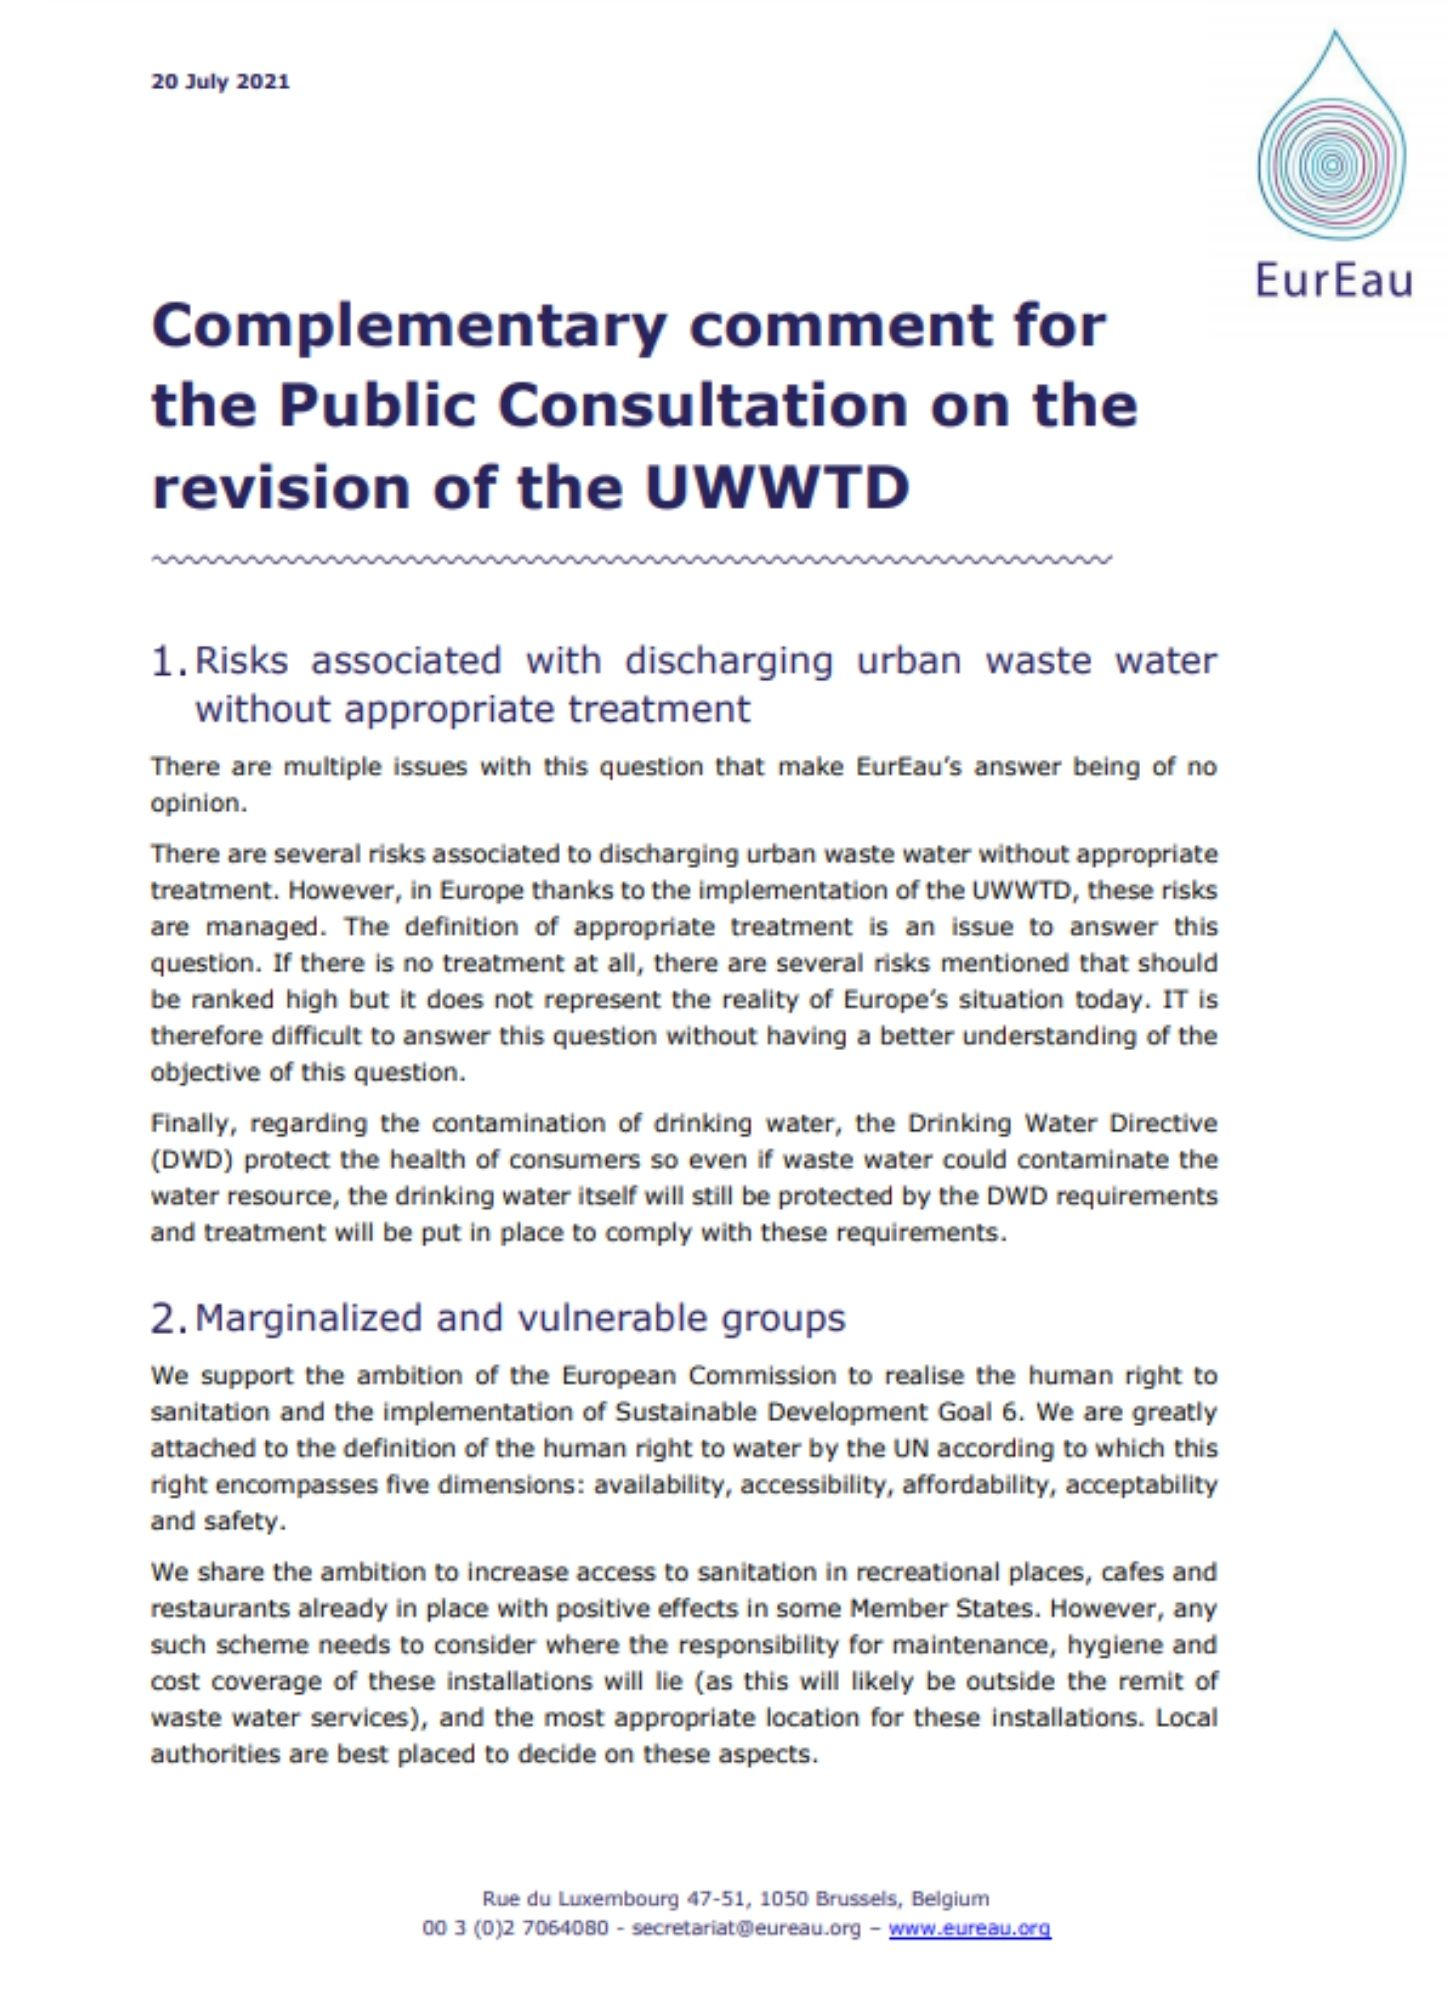 Complementary comment for the Public Consultation on the revision of the UWWTD